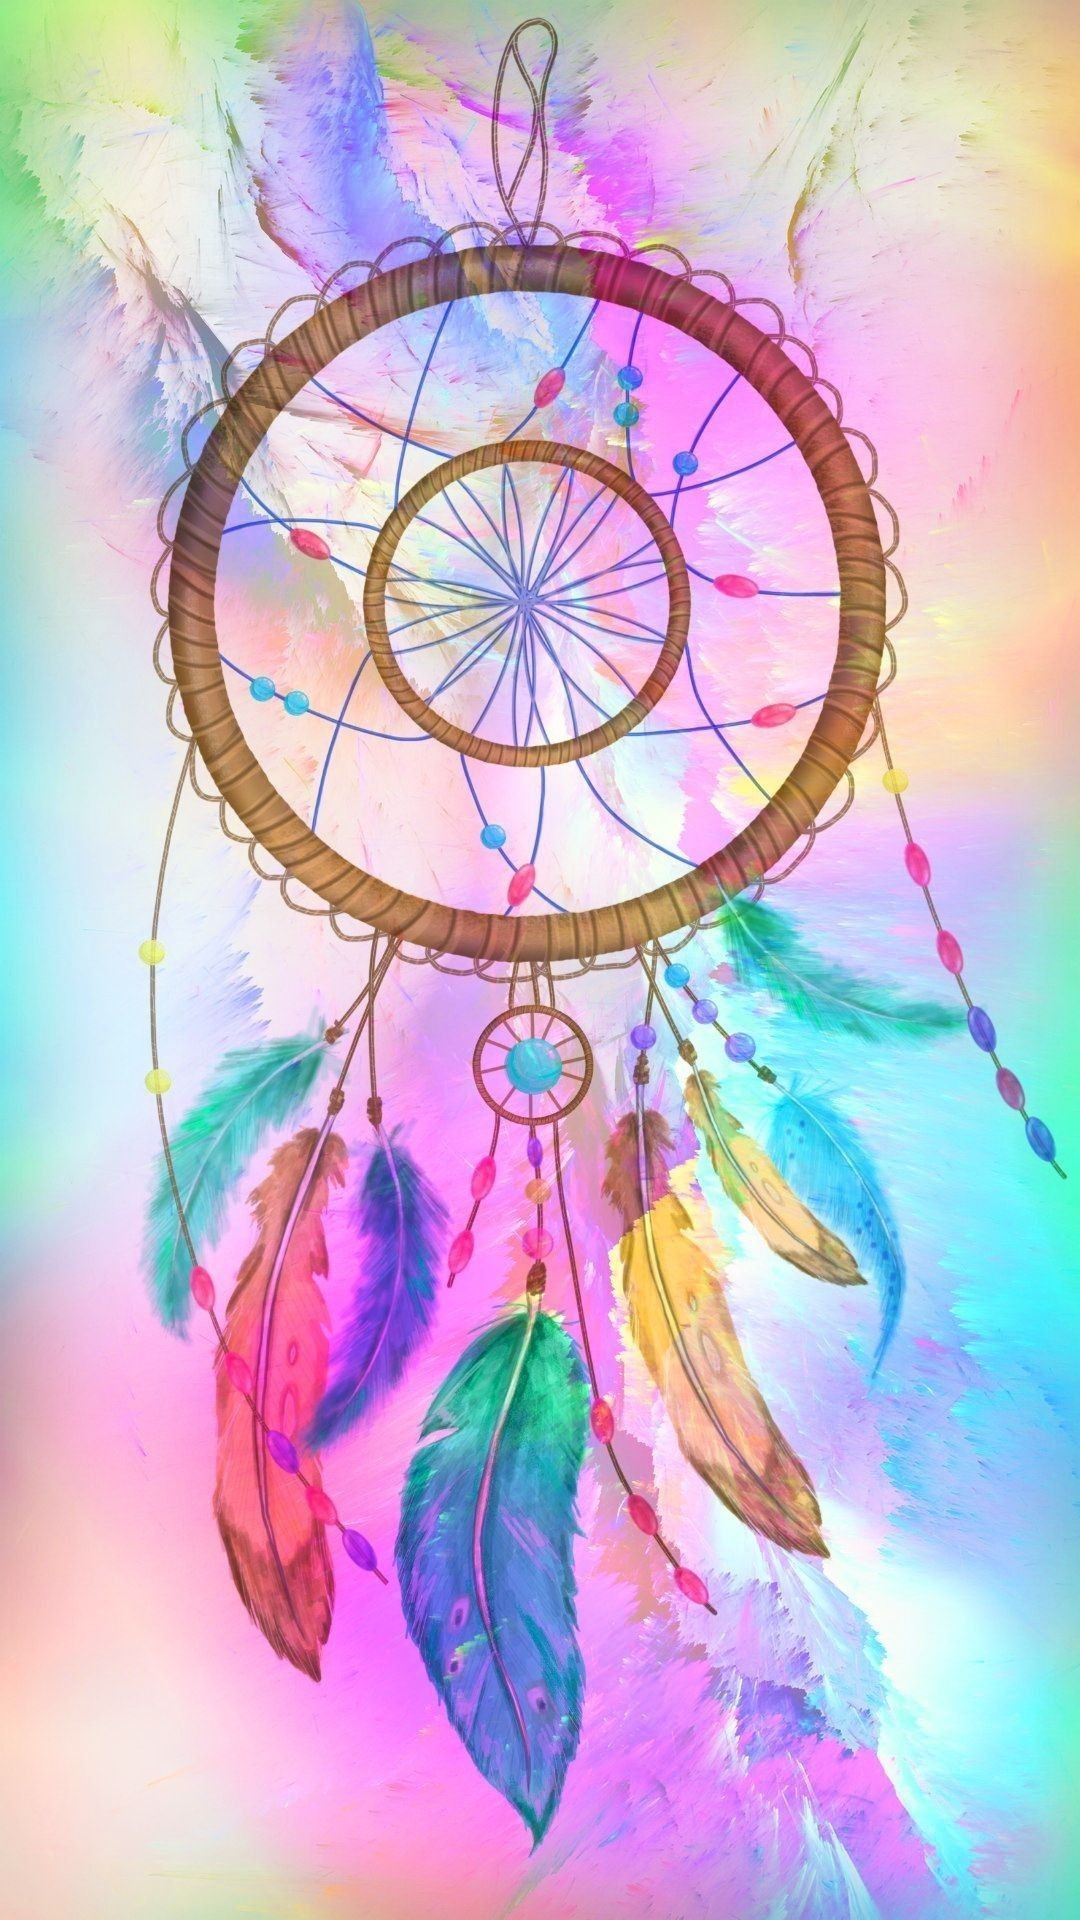 Pin by Gail Steven on Color Themes   Dream catcher, Dream